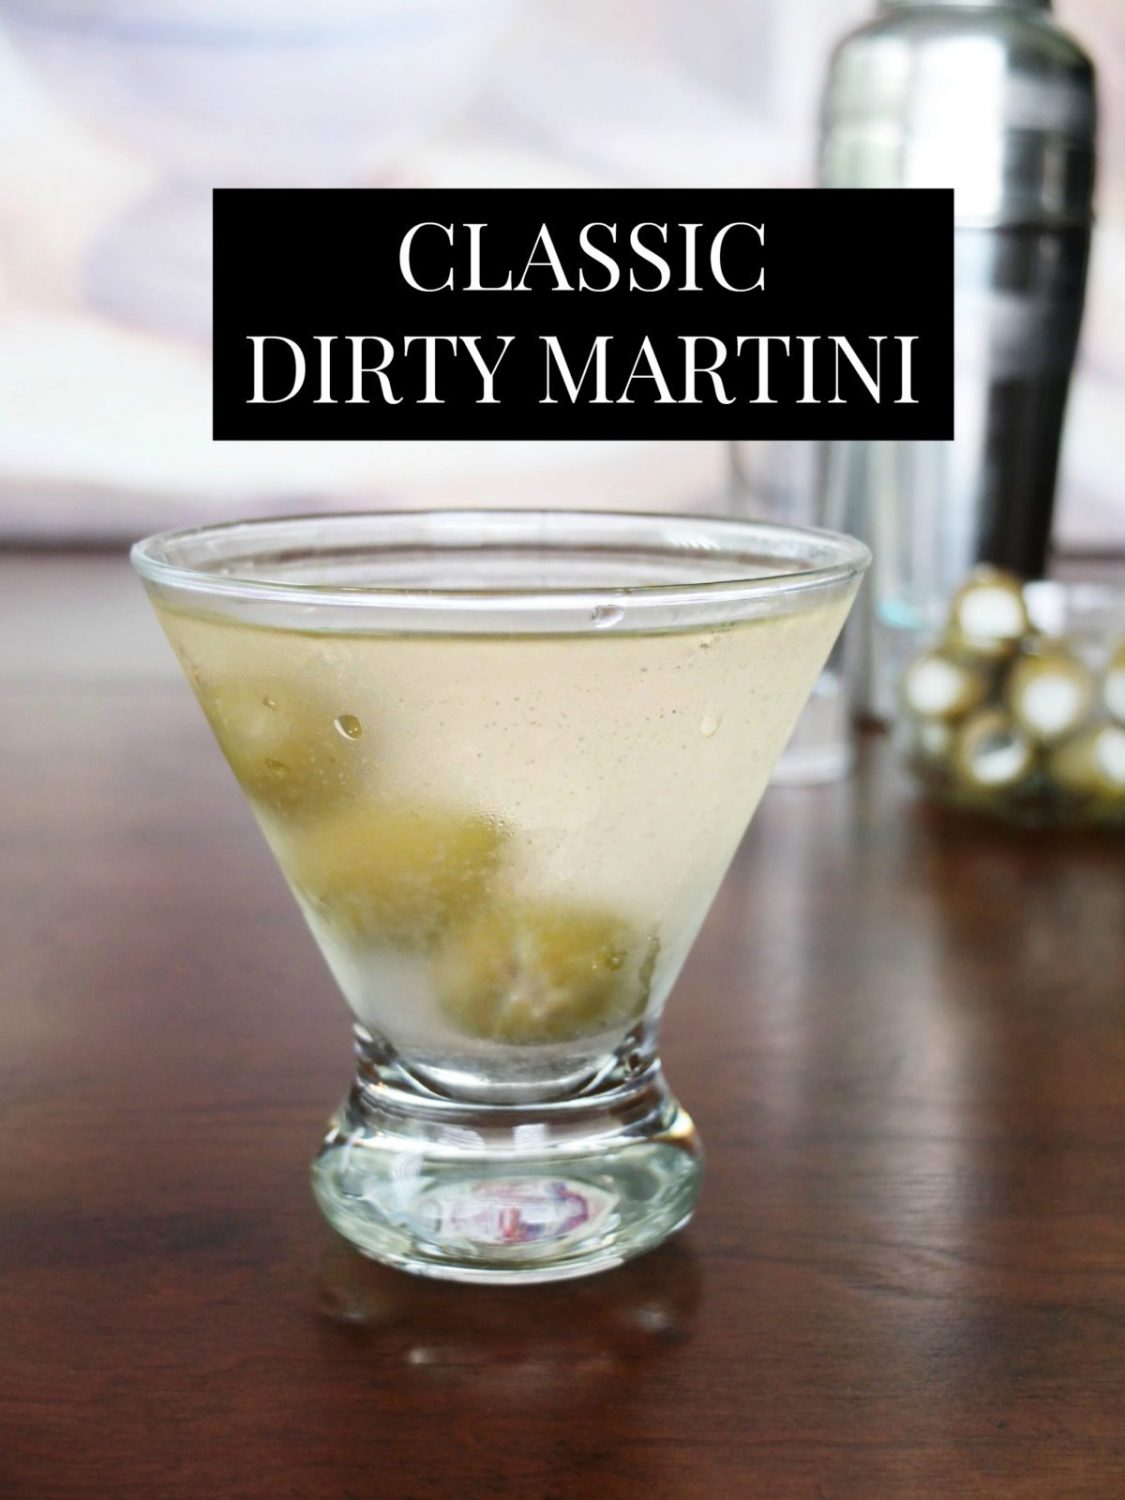 An easy and dirty martini recipe that uses garlic stuffed olive brine with blue cheese olives for a cocktail explosion. Best recipe for those who like a really dirty martini. Vodka martini or Gin Martini optional spirits. #Cocktails